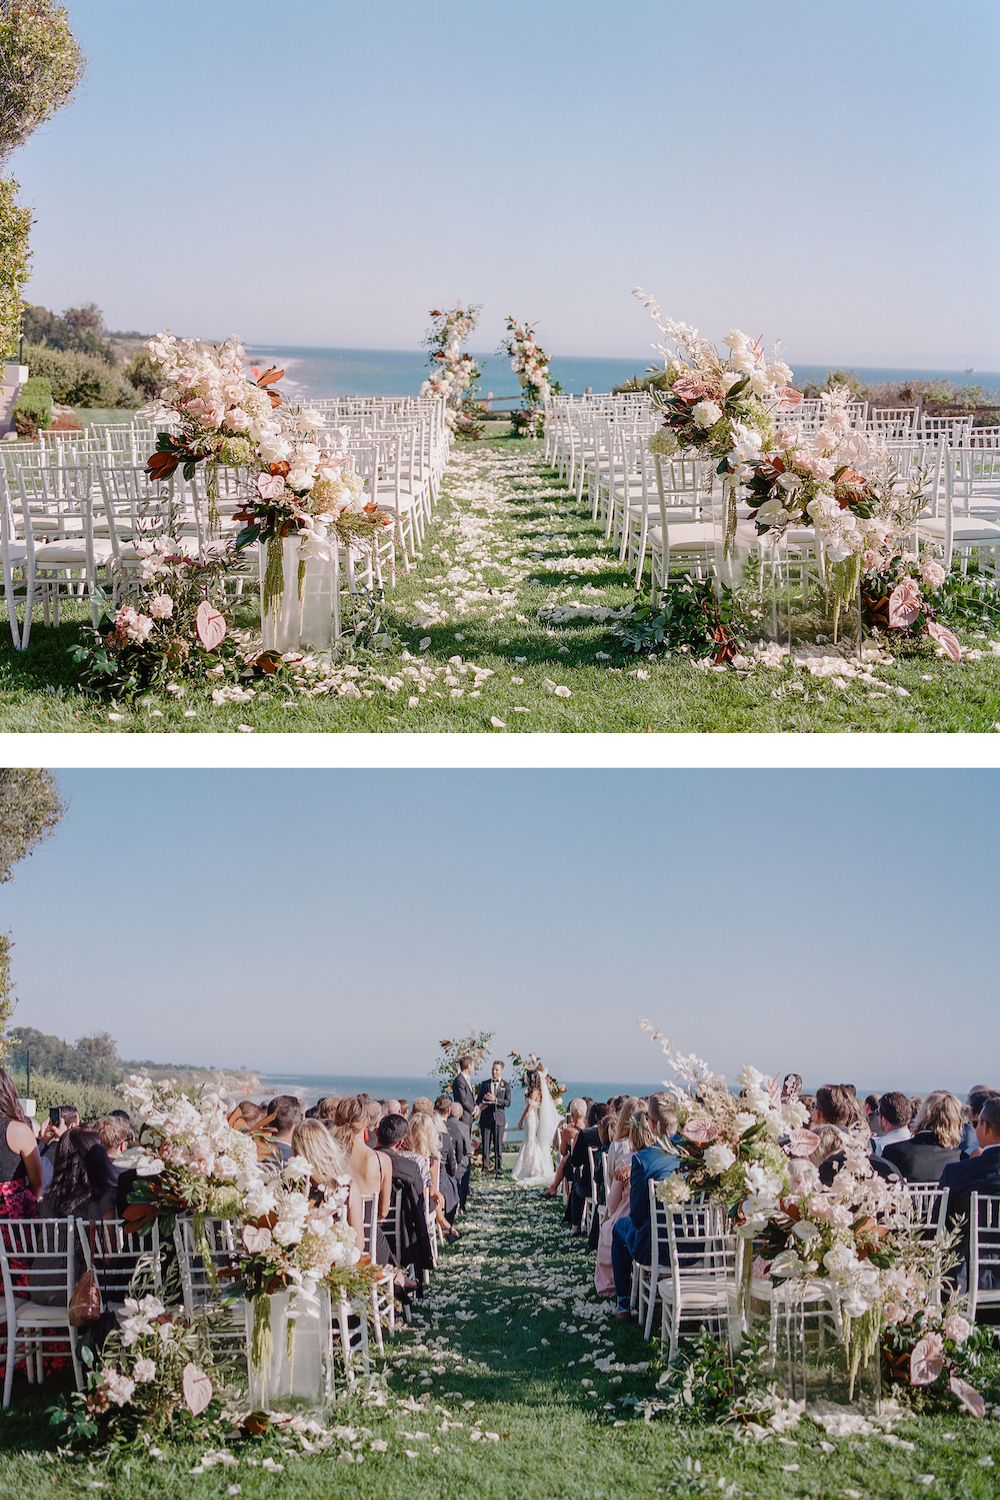 Abundant ceremony backdrop floral arrangements on clear acrylic plexiglass panels gives an organic feel to the cliffside ceremony overlooking the ocean.